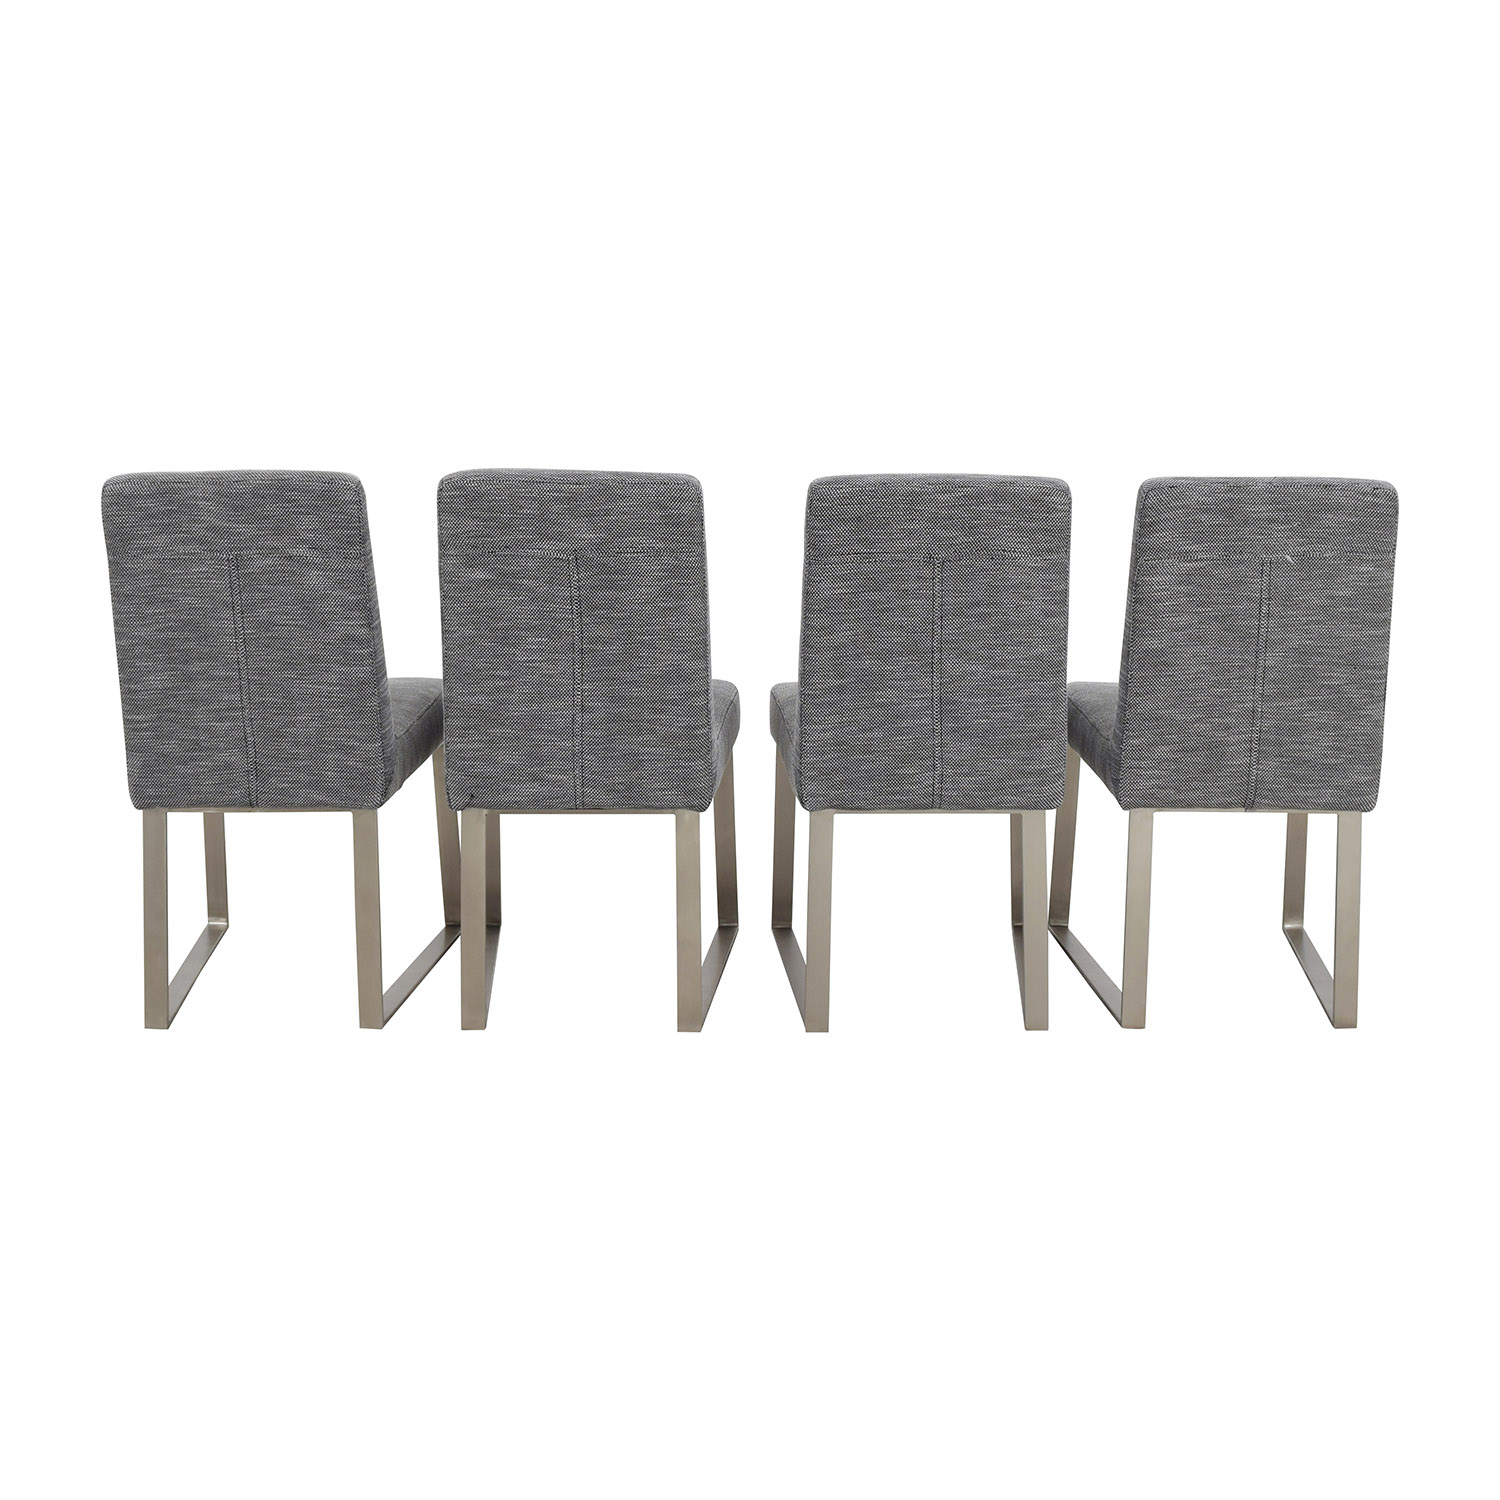 InMod InMod Vivo Grey Chairs second hand